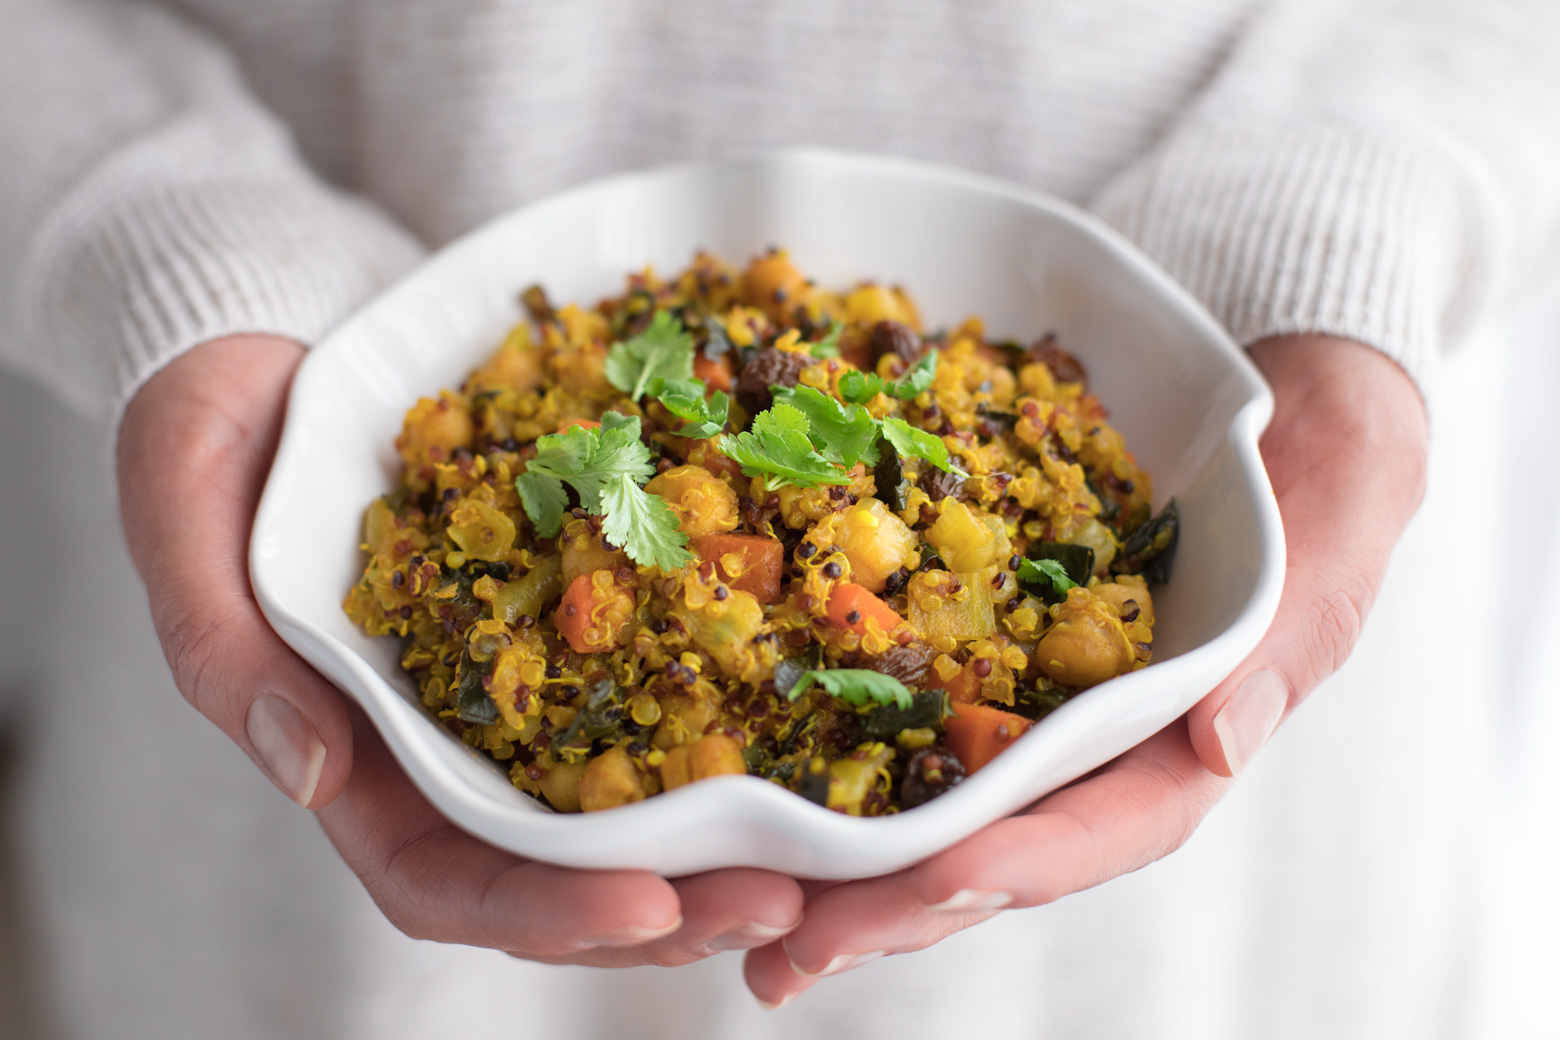 A bowl filled with a chickpea quinoa dish